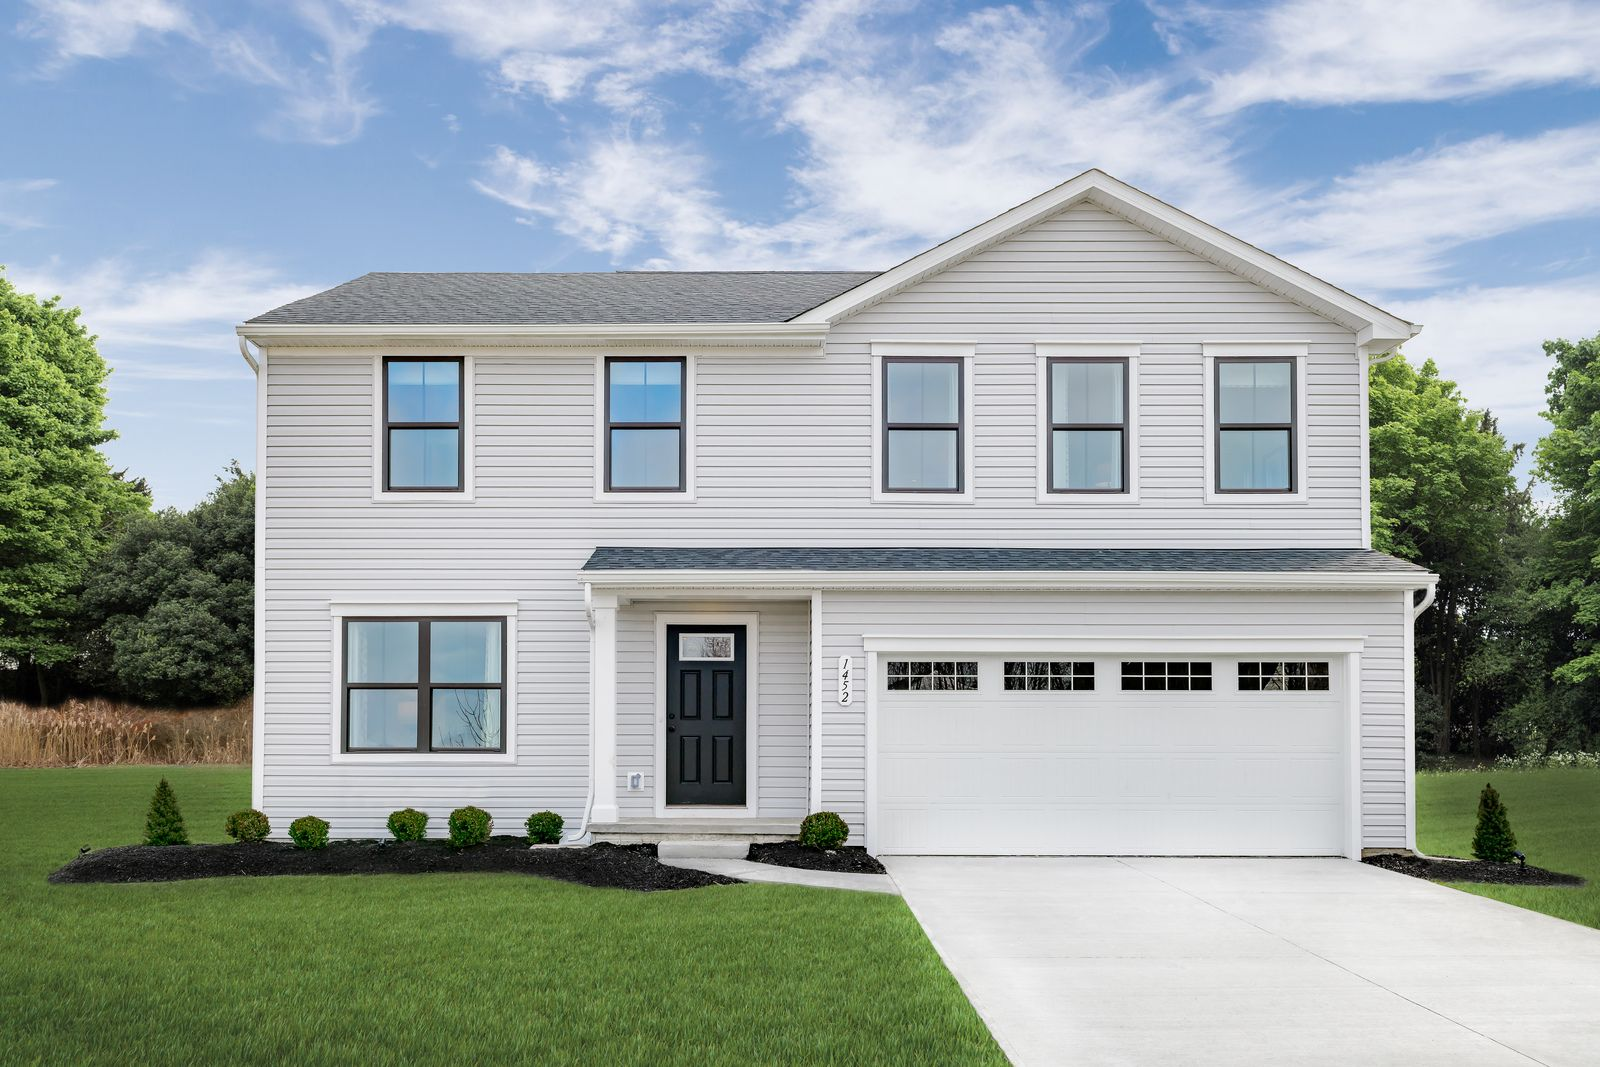 JOIN THE WRIGHT LANDING VIP LIST TODAY:Lowest-priced new homes in Moraine. Own for same as rent—included appliances, 3-5 beds & attached 2-car garage. Minutes to I-75/675—from $180s. Click here to join the VIP Listfor exclusive pricing!